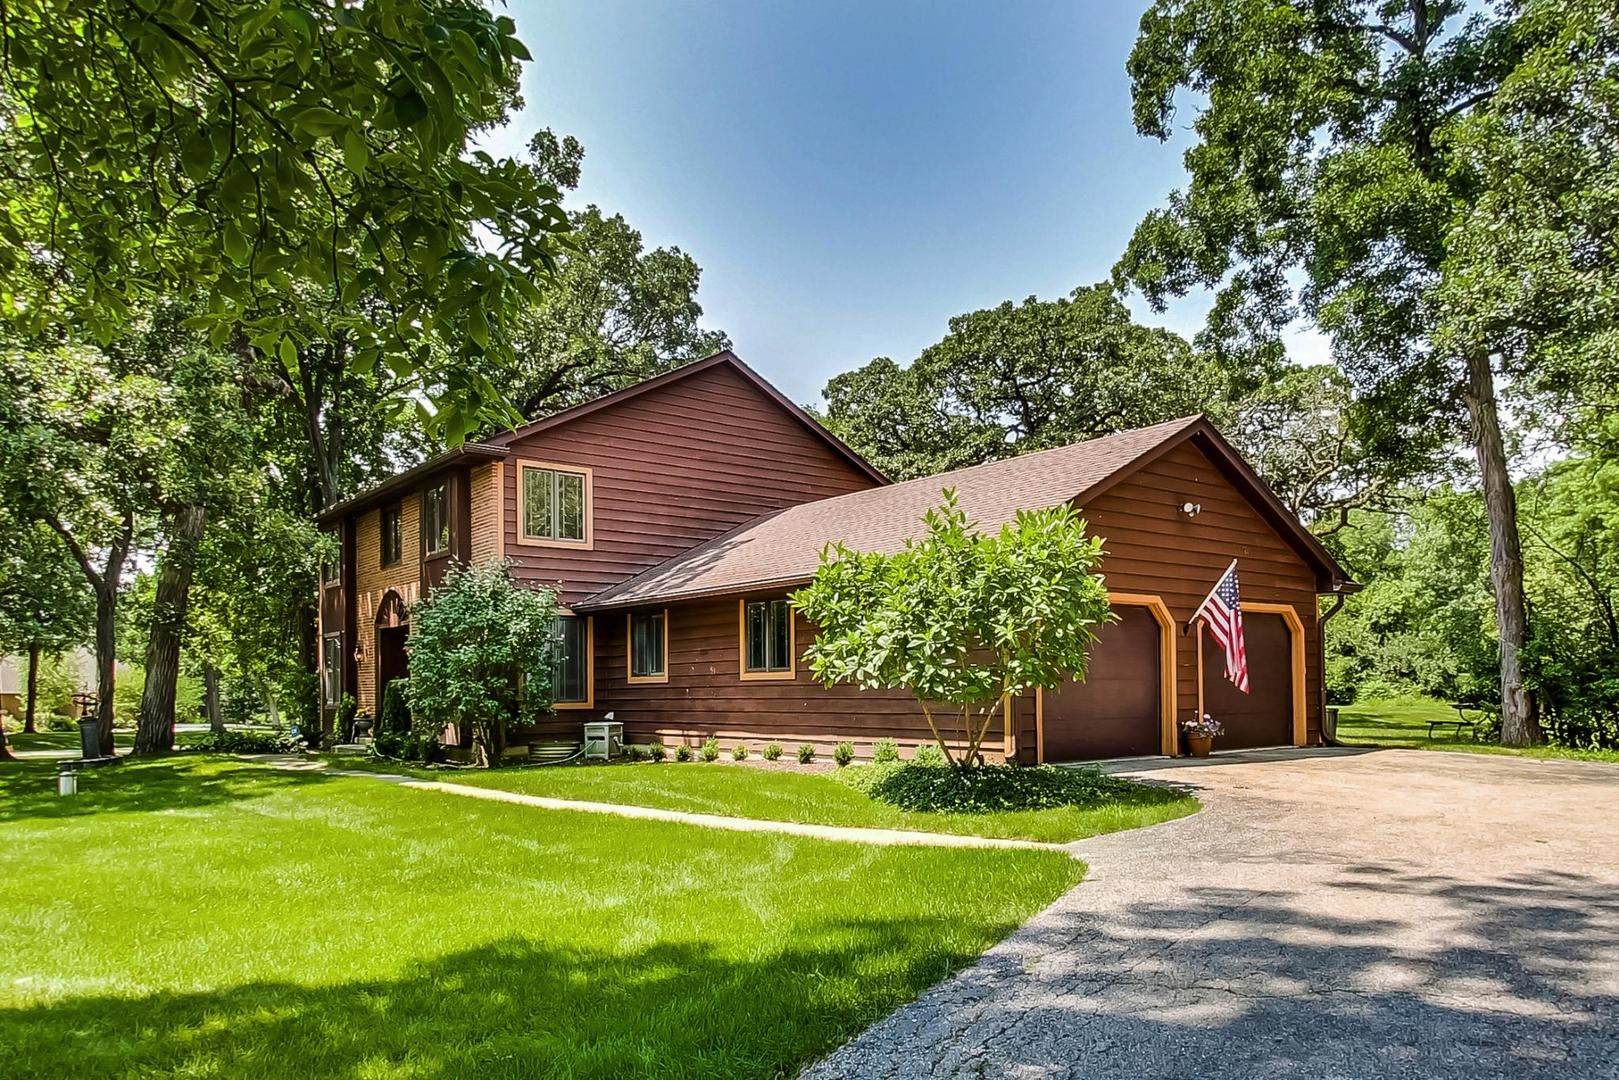 1 Wooded Lane, Hawthorn Woods, IL 60047 - #: 11231815